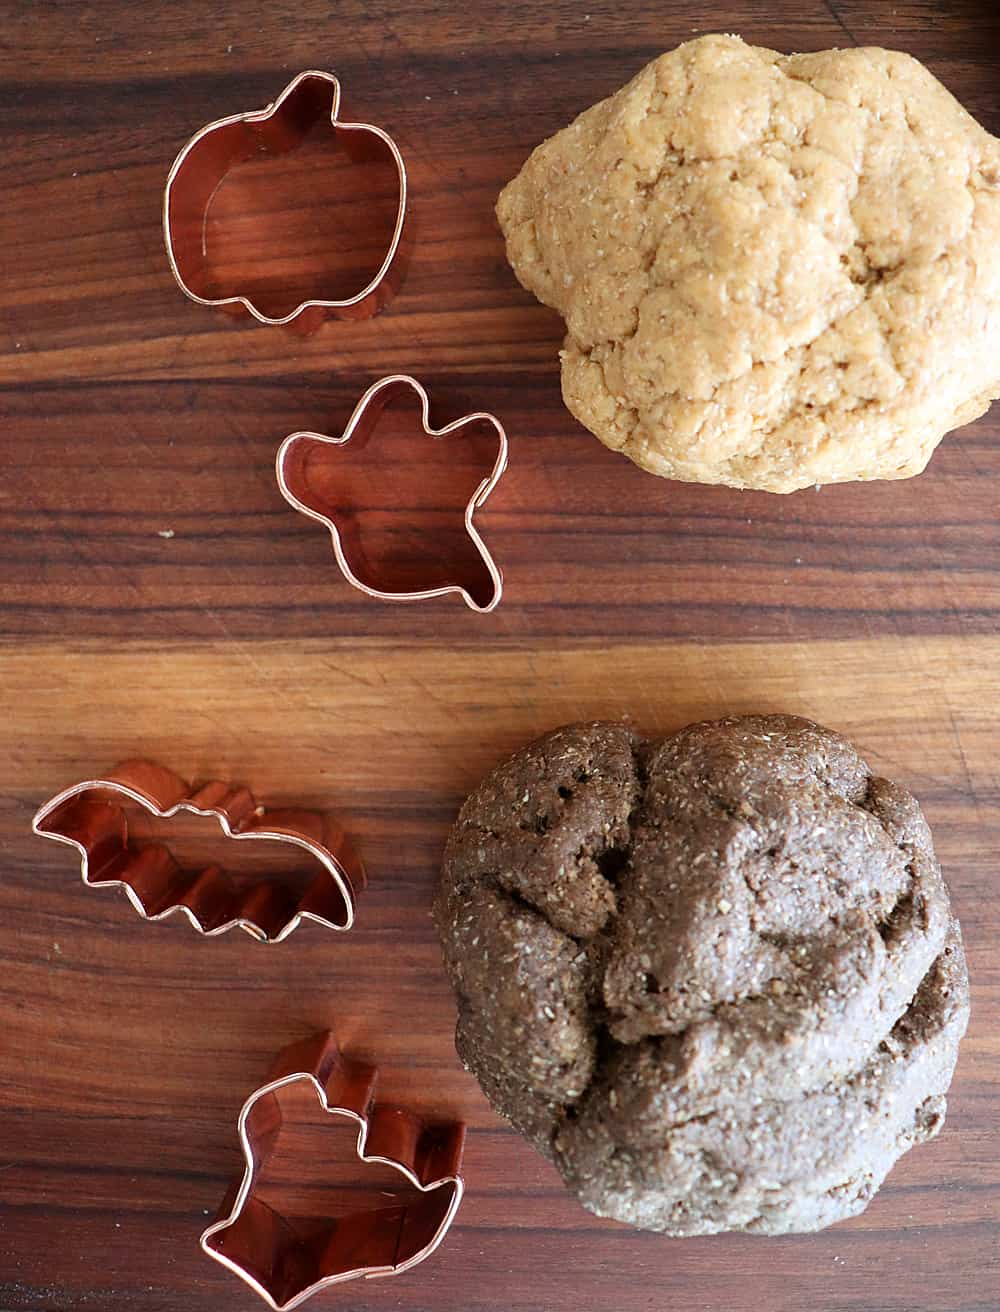 Two doughs with cookie cutters on a wooden cutting board